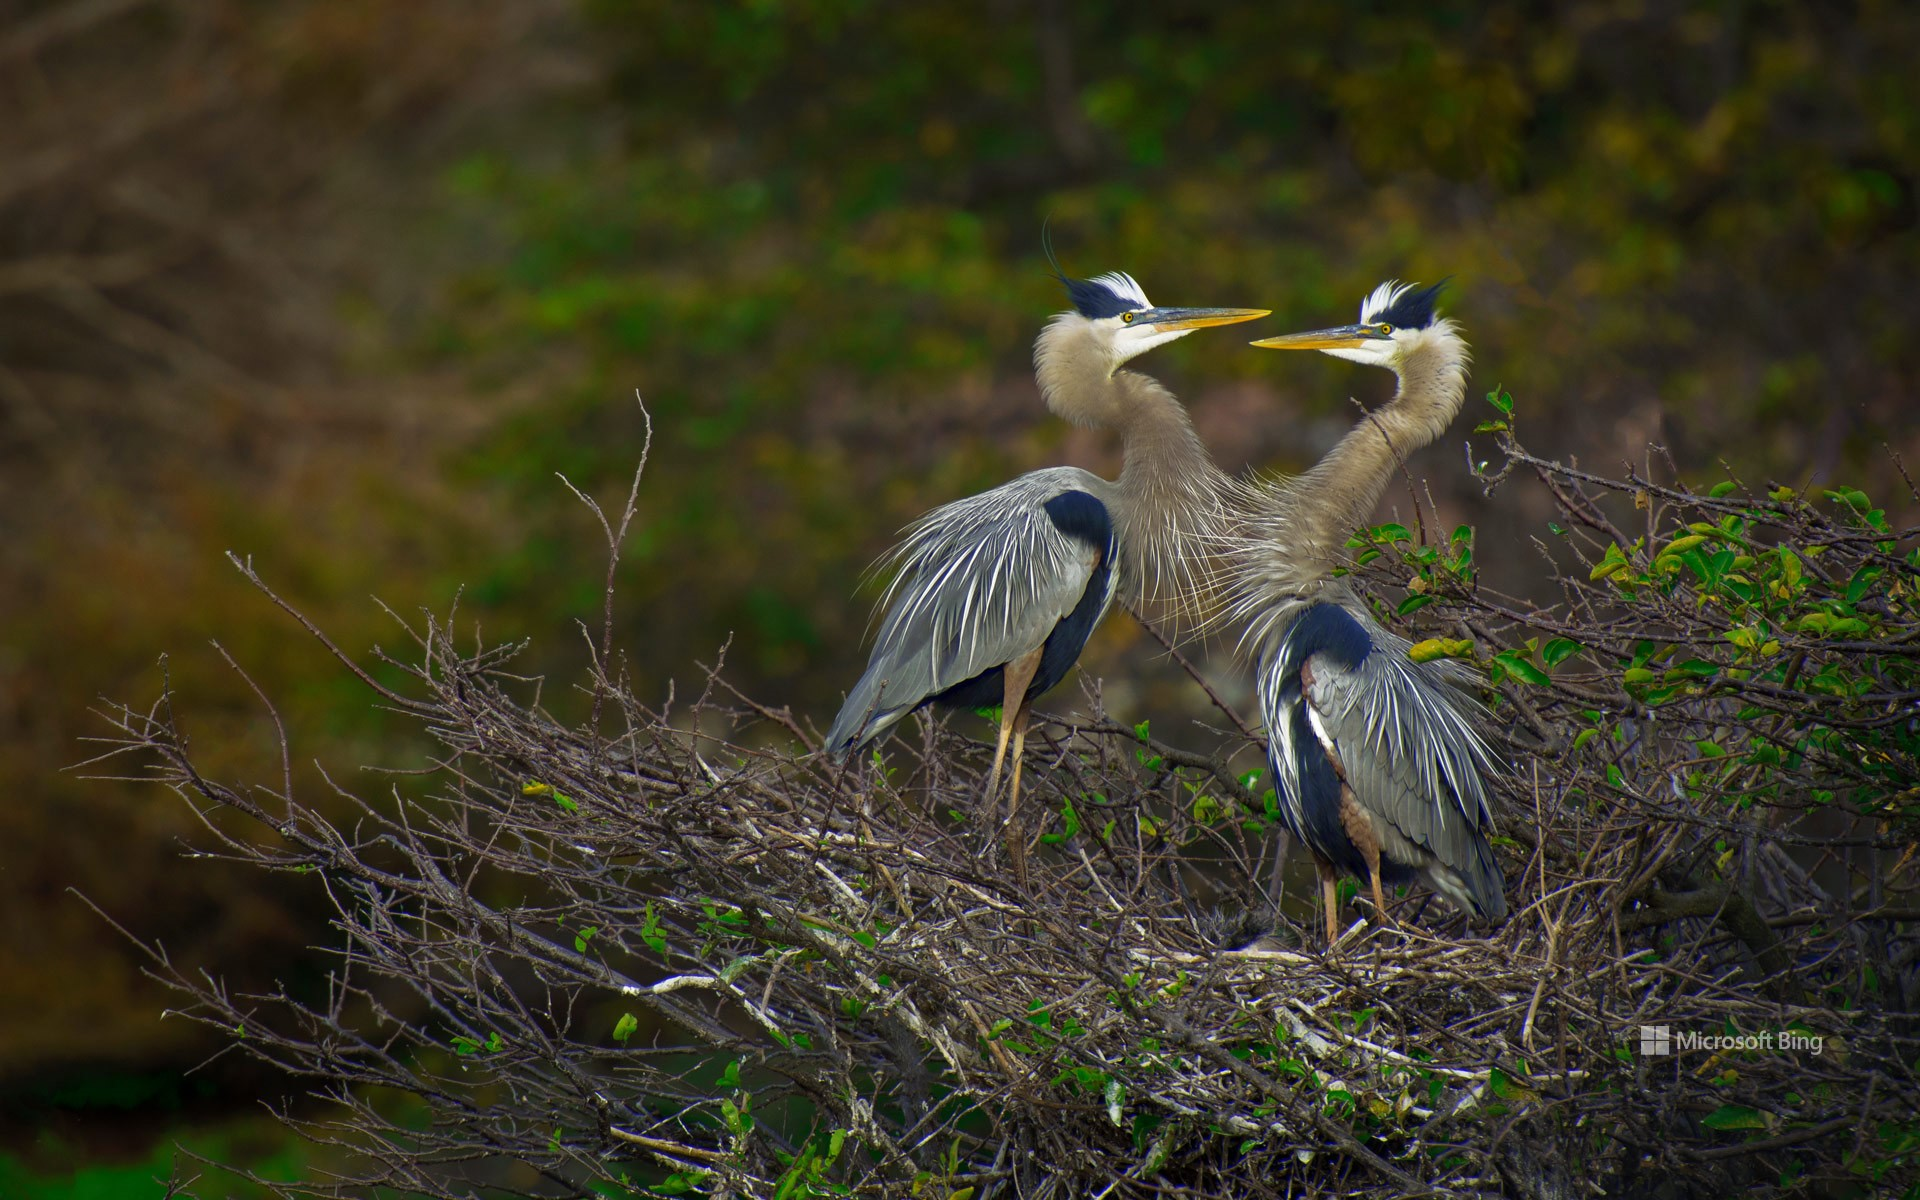 Great blue herons in the Wakodahatchee Wetlands, Delray Beach, Florida, USA